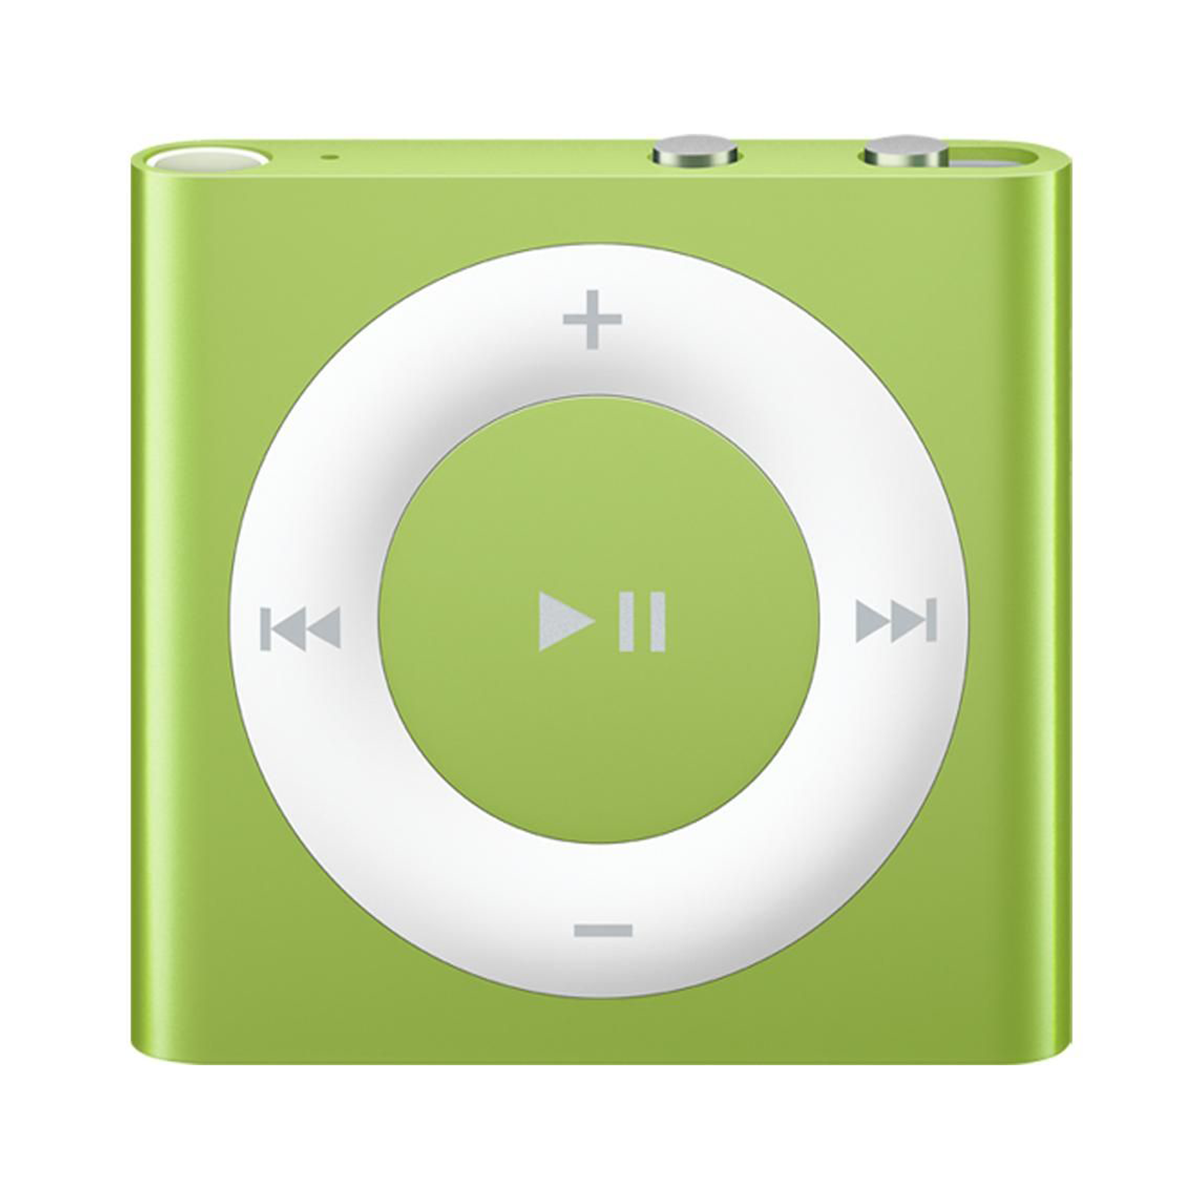 Generation 5 Waterproof iPod - Swimman Australia - 4